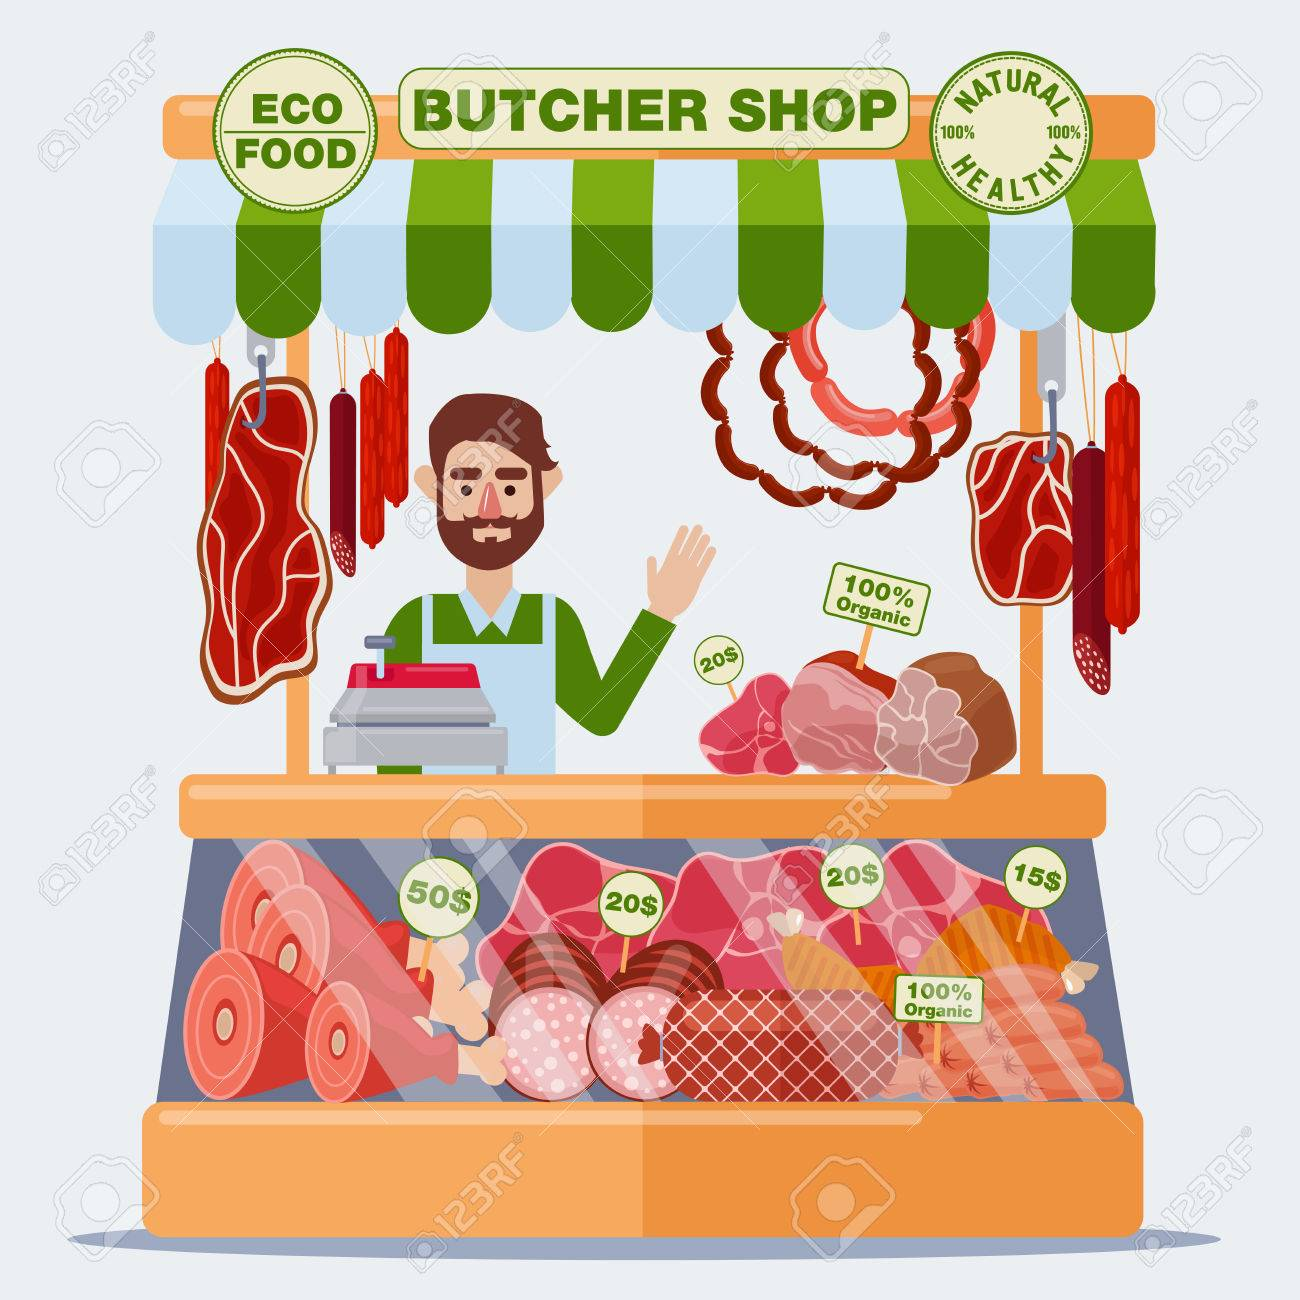 Butcher Shop. Meat Seller. Meat Products. Vector illustration.